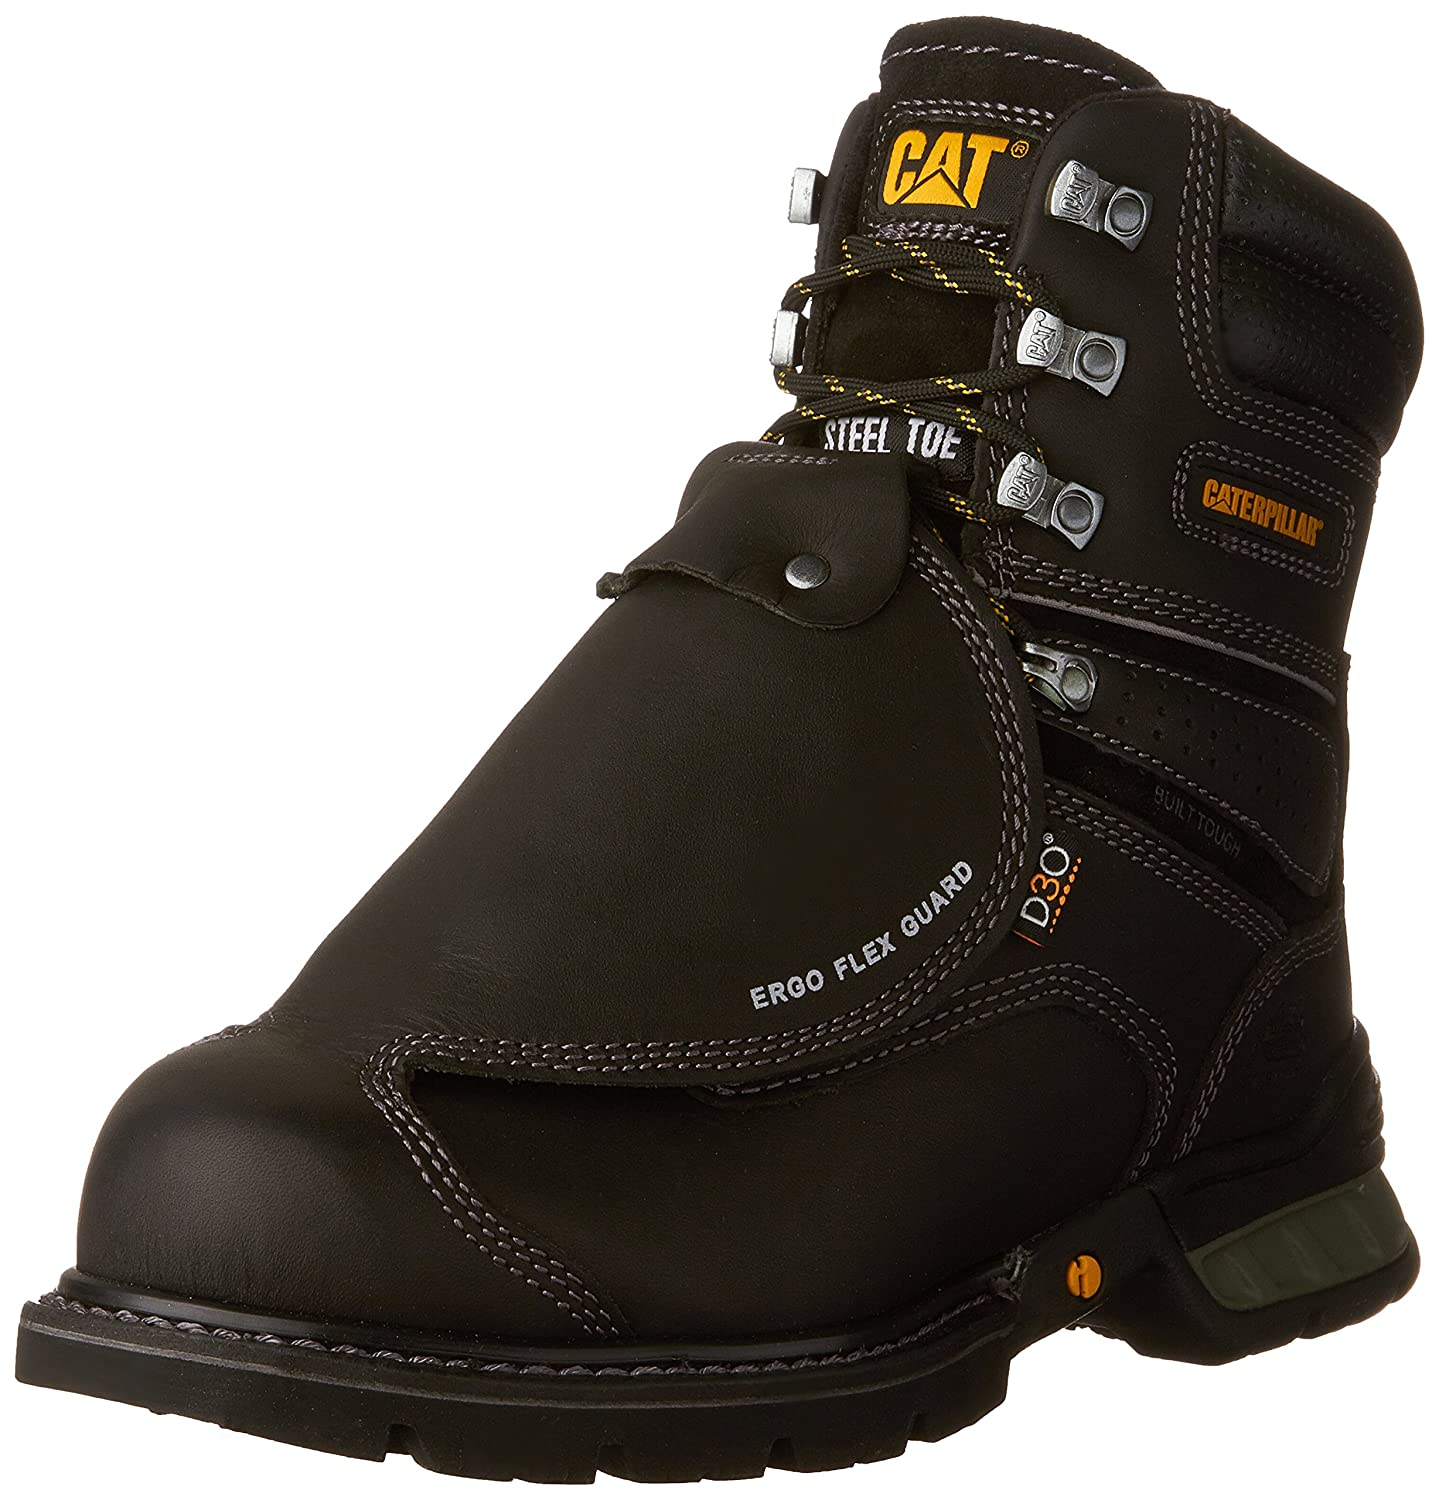 1a6354f1a7b CAT Footwear Men s Ergo Flex Guard 8-Inch CSA Work Boot  Amazon.ca  Shoes    Handbags